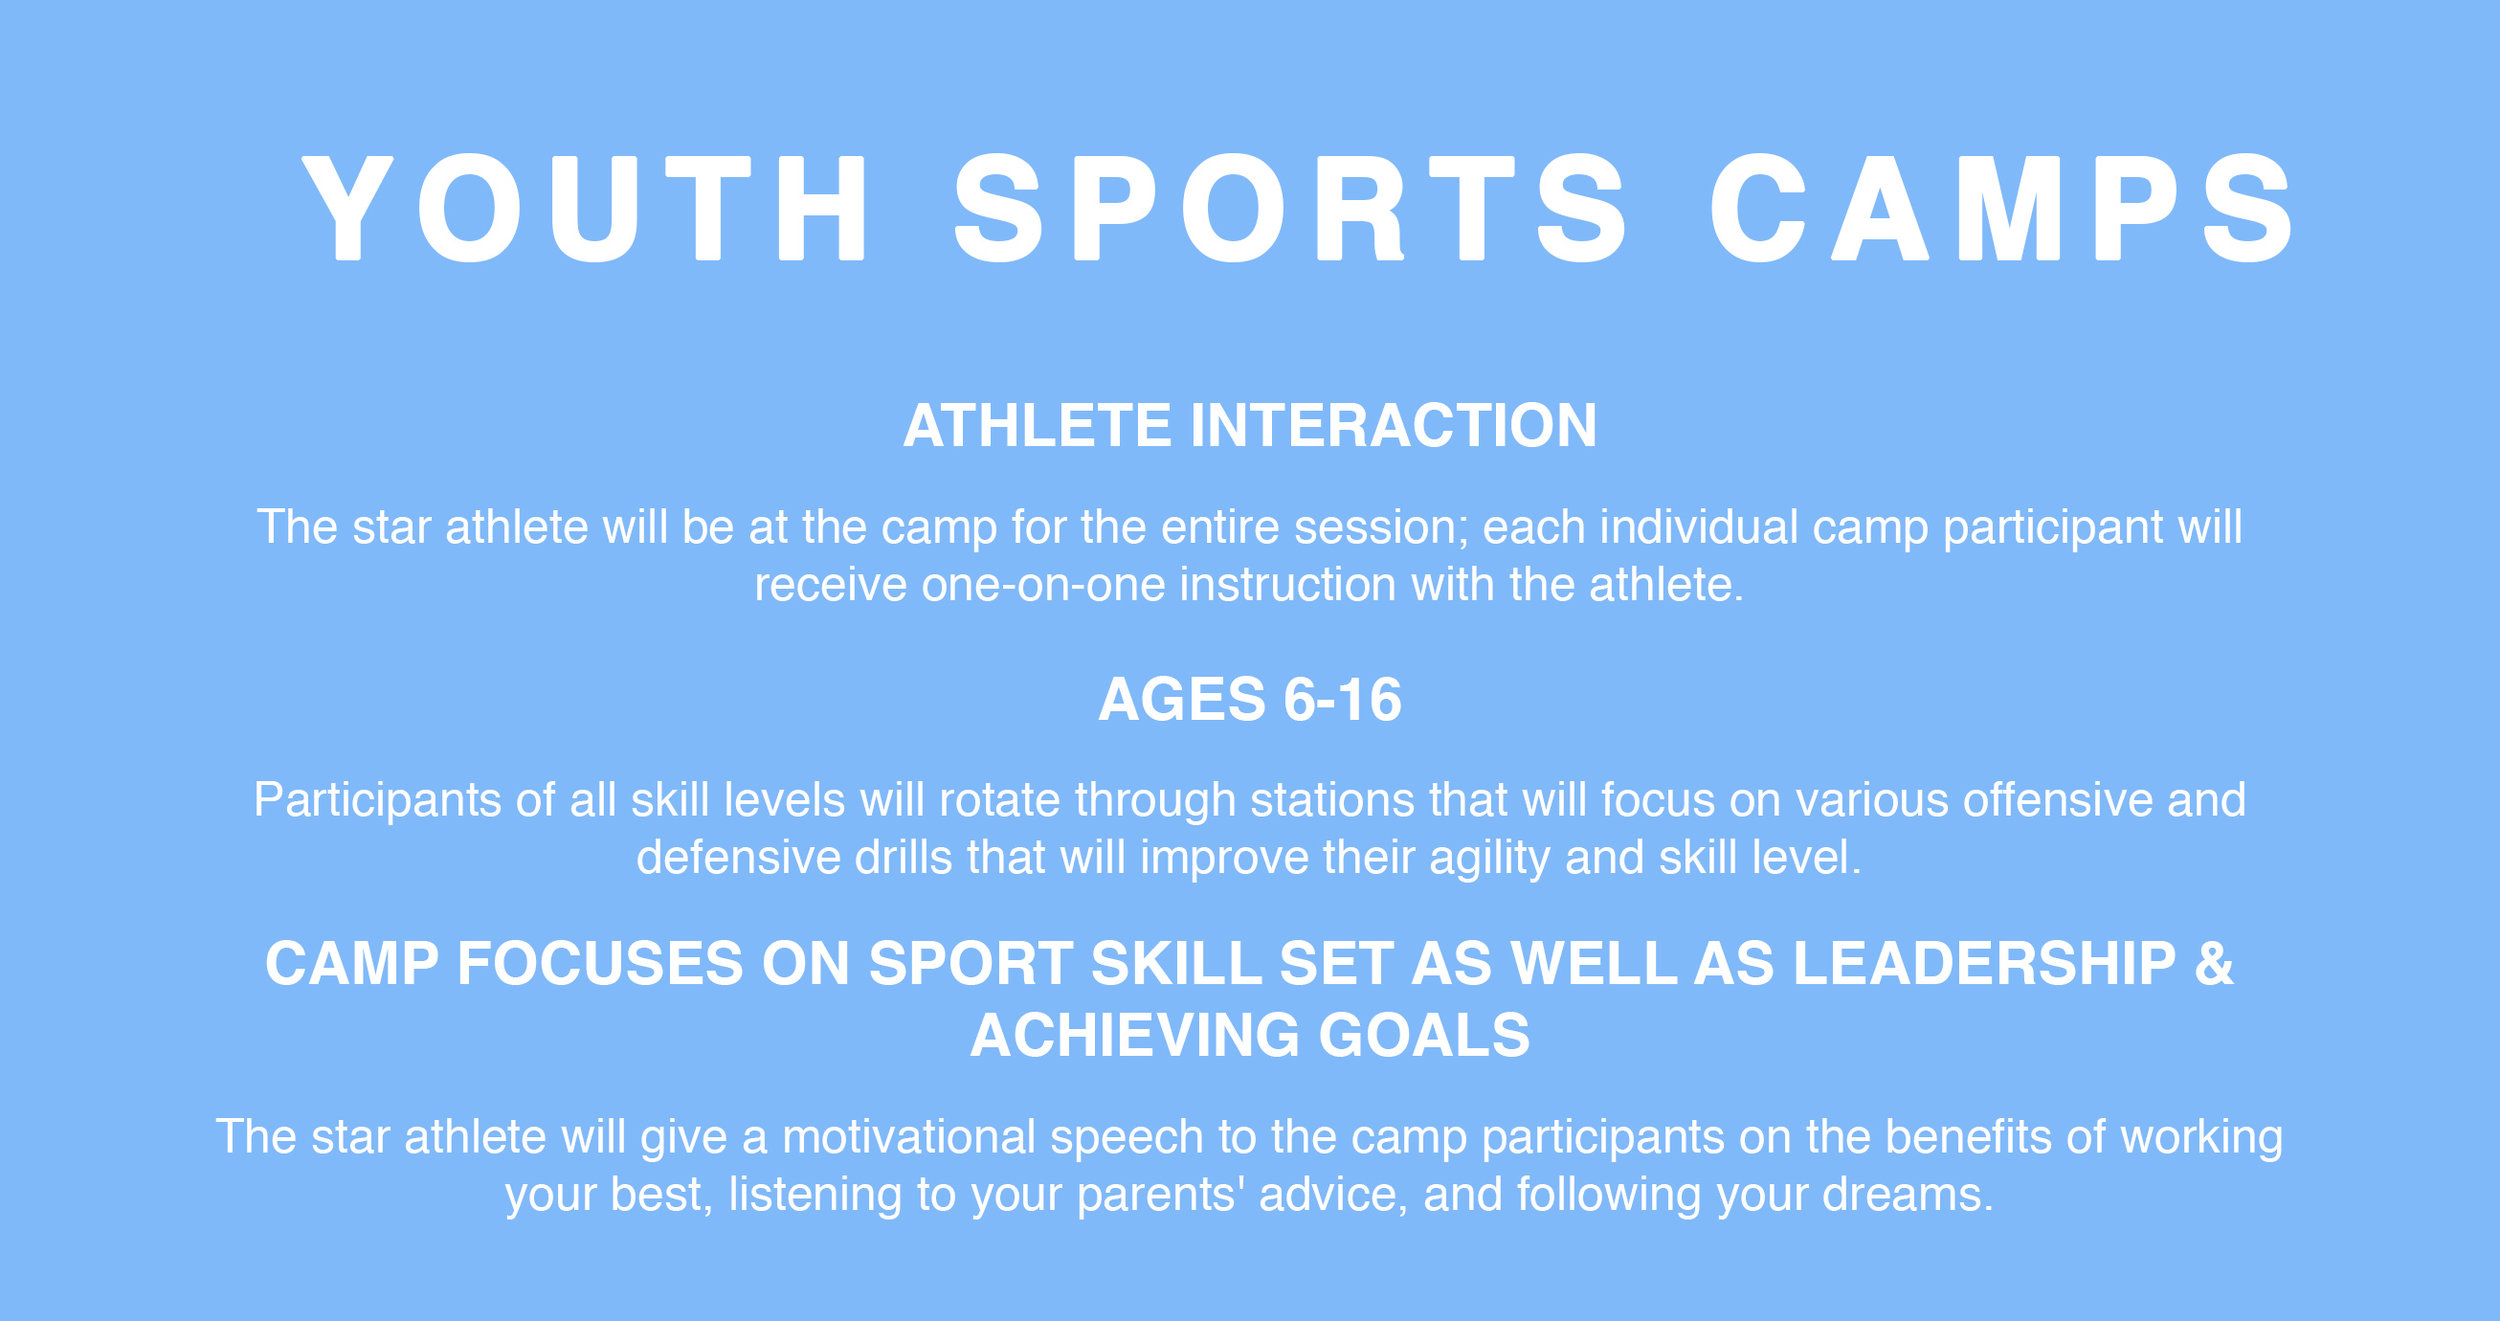 YOUTH+SPORTS+CAMPS+.jpg